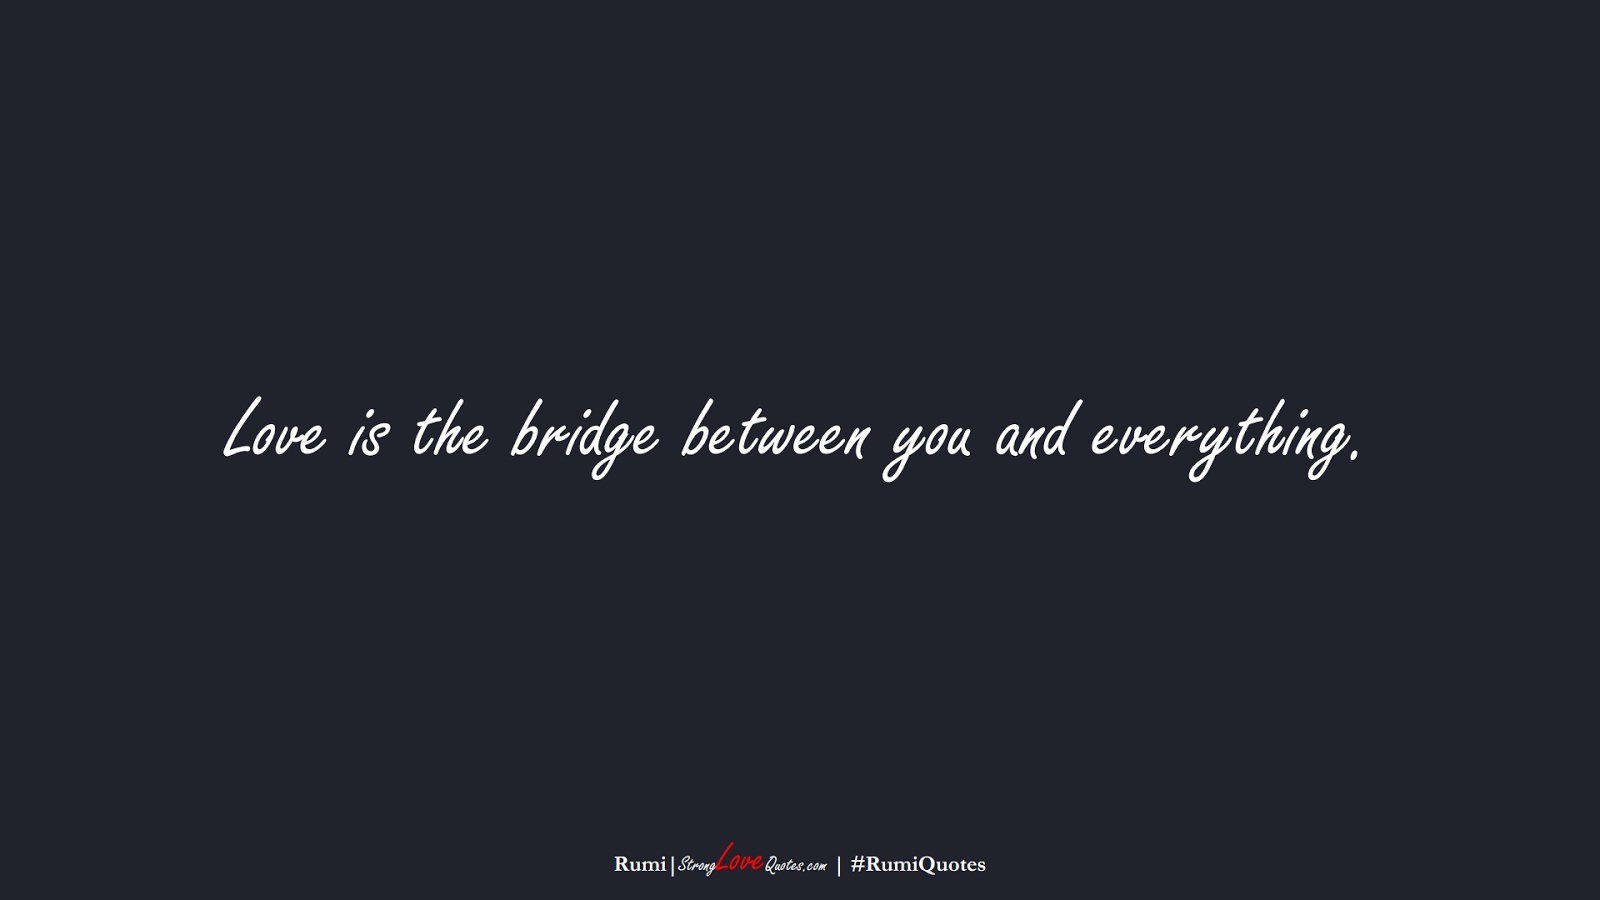 Love is the bridge between you and everything. (Rumi);  #RumiQuotes